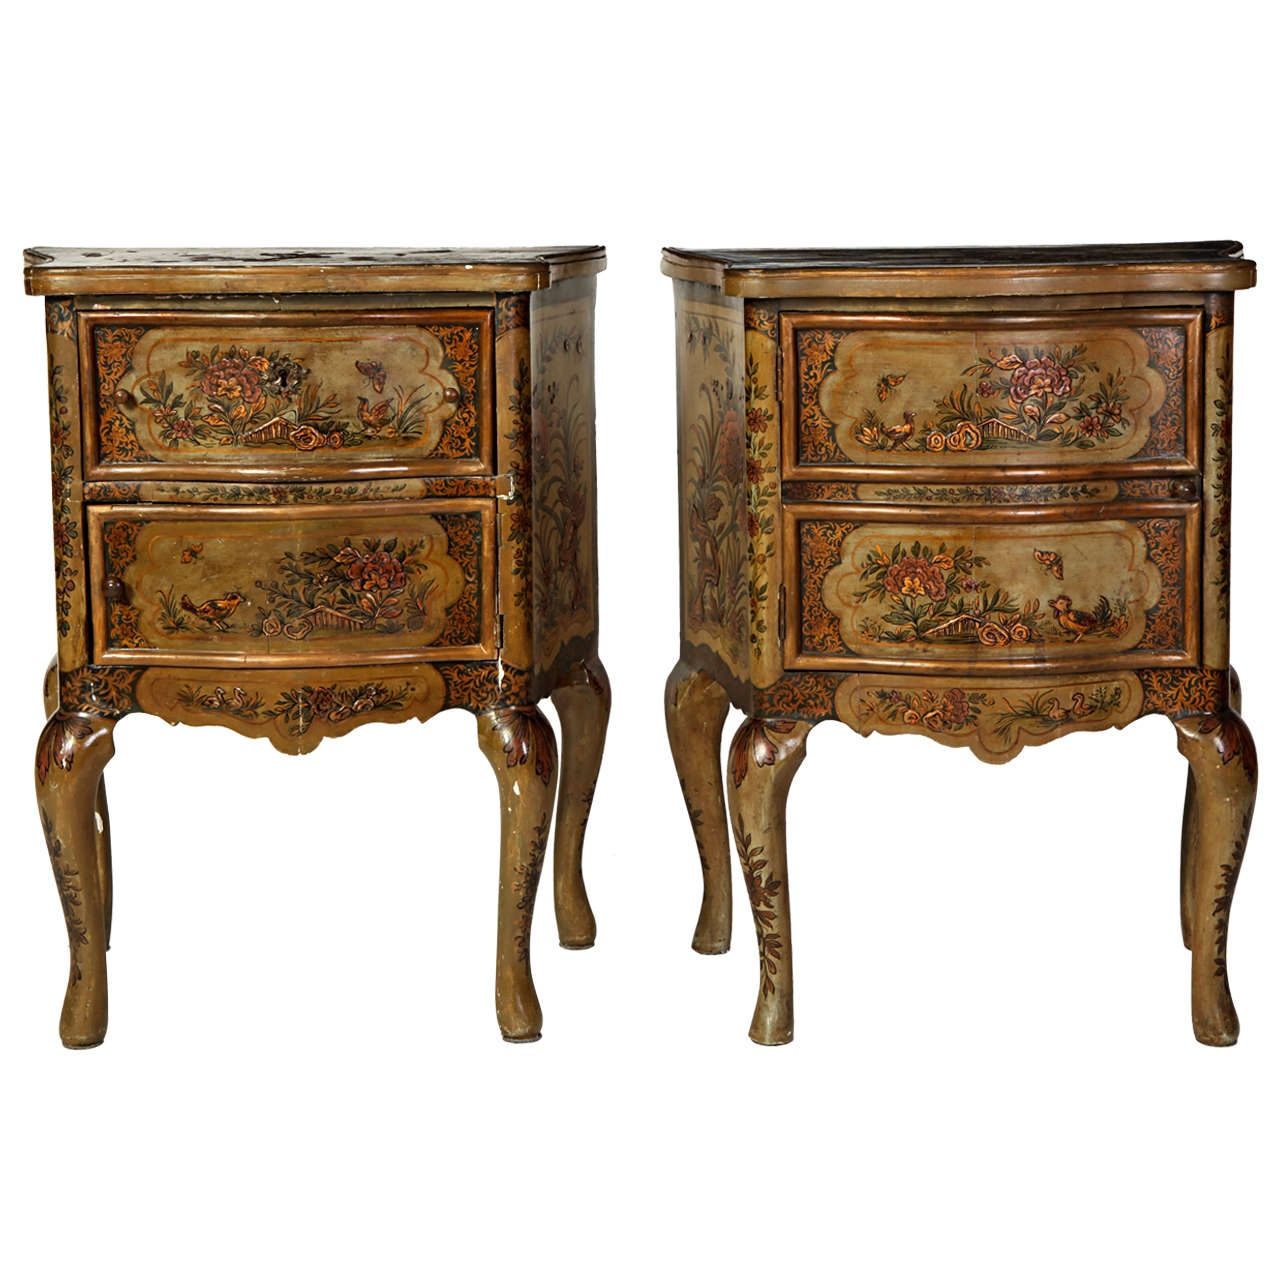 Pair of Small Italian Lacquered Commodes 19' century For Sale